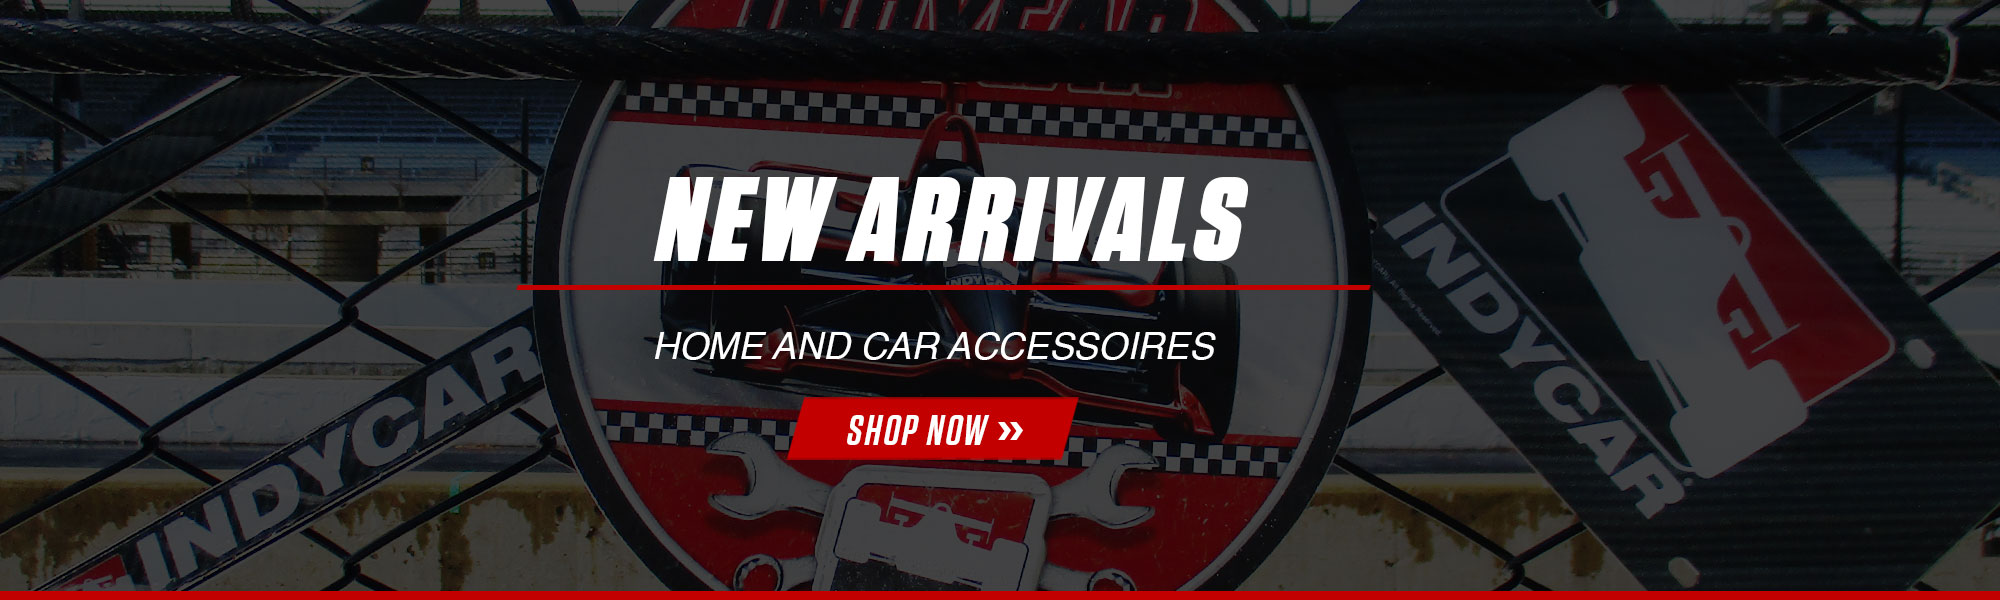 homepage-indy-new-arrivals-2-2019-2.jpg